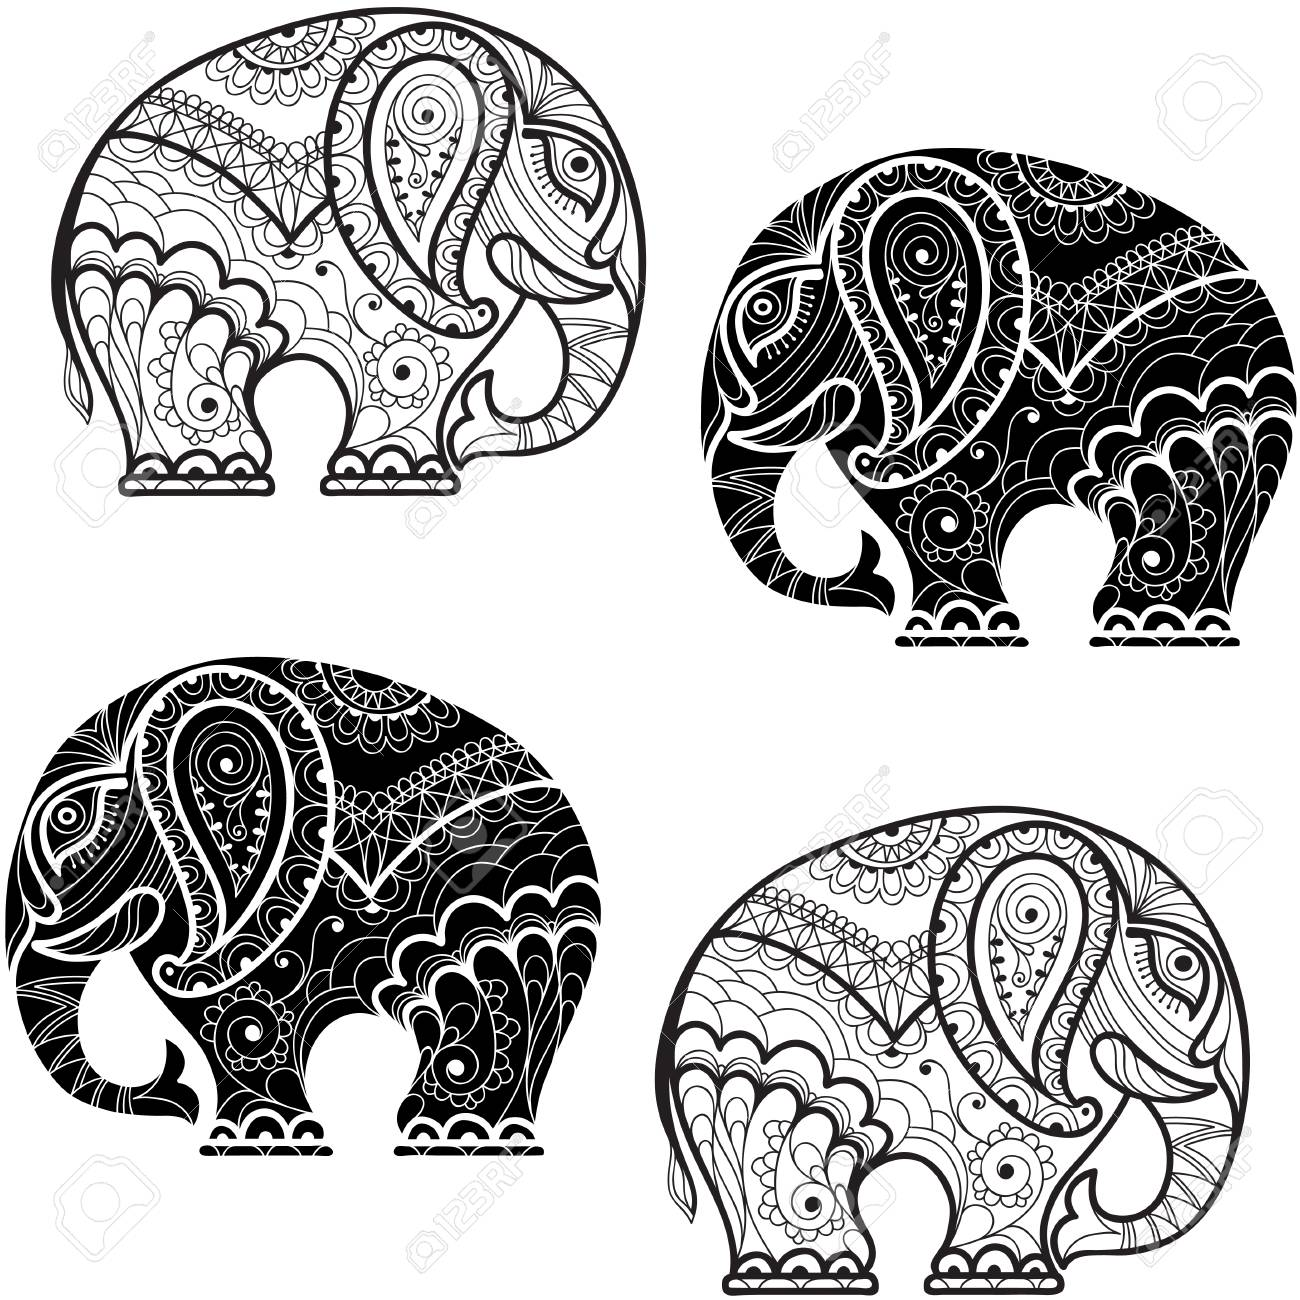 Zentangle Elefant Vorlage Stock Photo